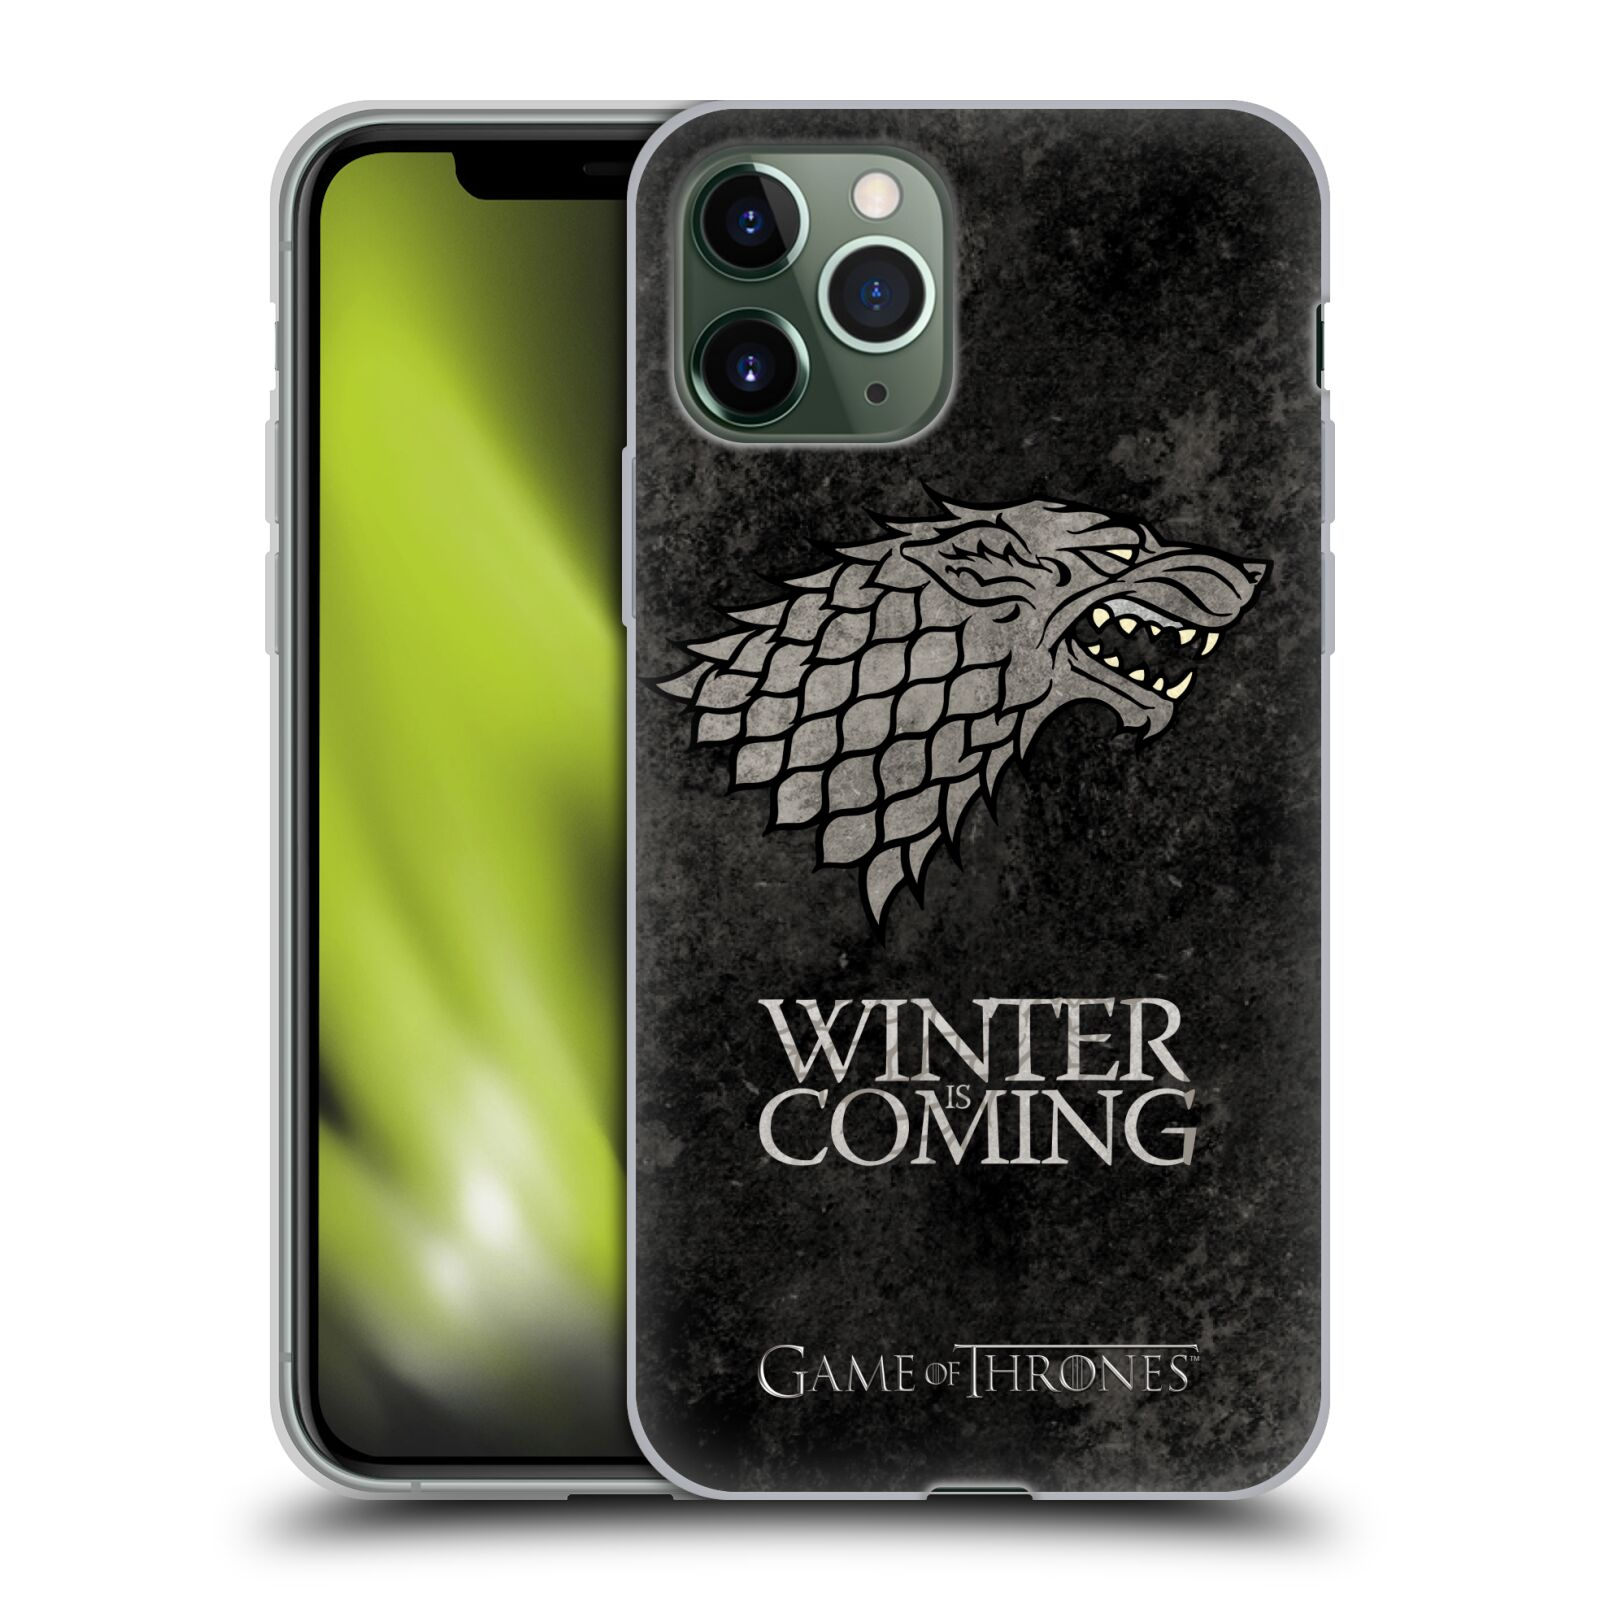 vodotesny obaly iphone 11 | Silikonové pouzdro na mobil Apple iPhone 11 Pro - Head Case - Hra o trůny - Stark - Winter is coming